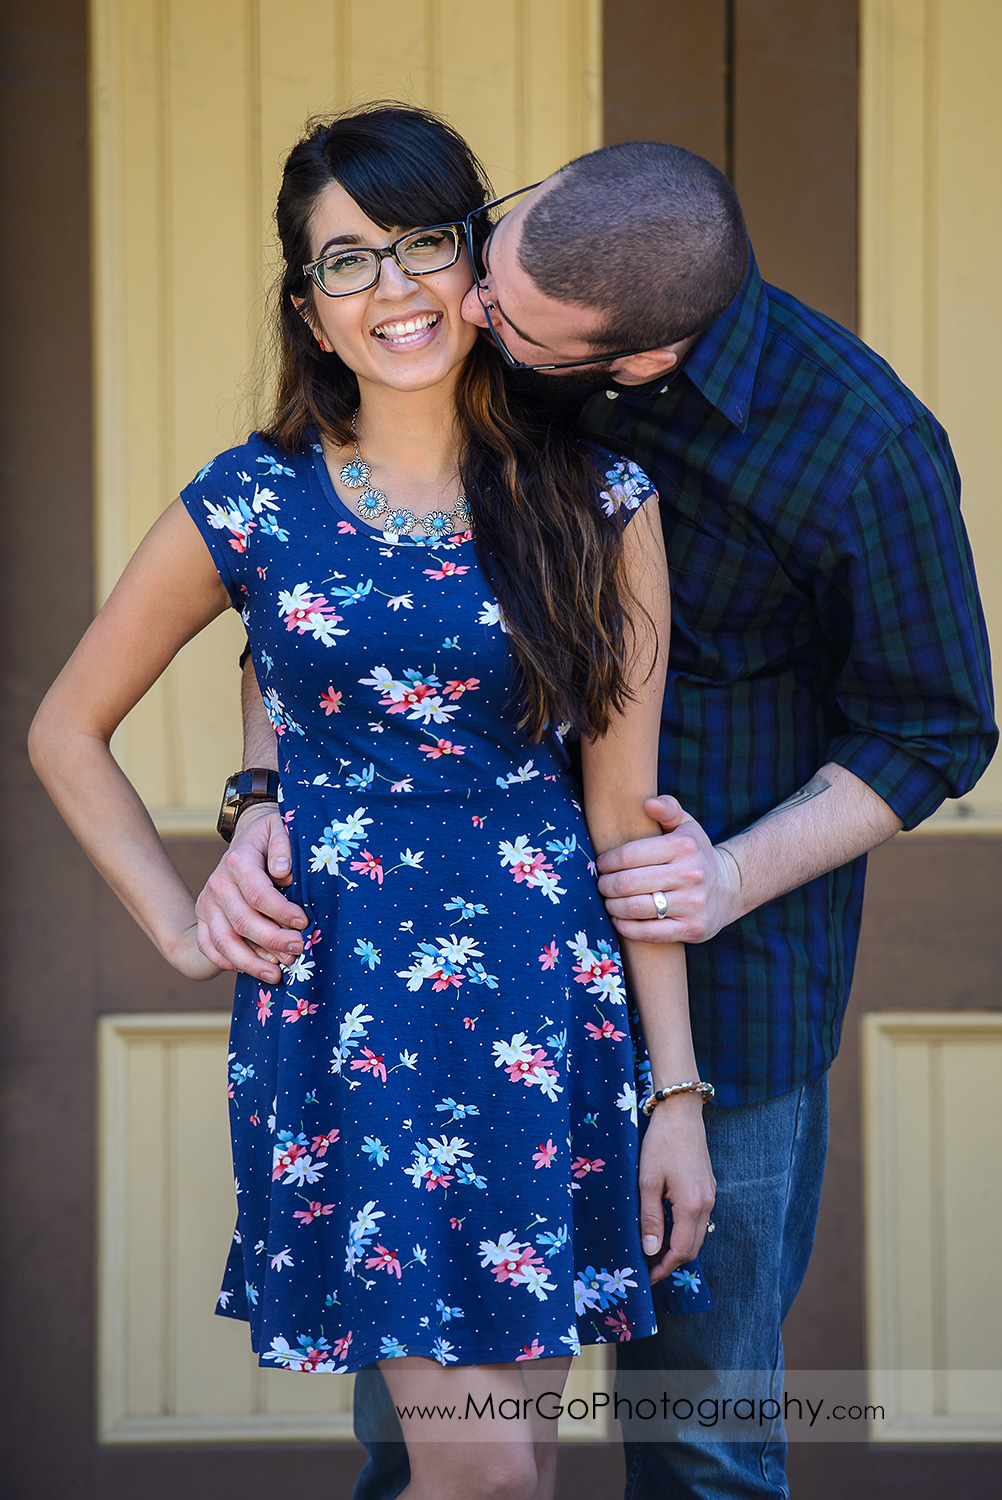 3/4 portrait of man in blue shirt kissing woman in blue dress looking into camera during engagement session at Sunol Station of Niles Canyon Railway